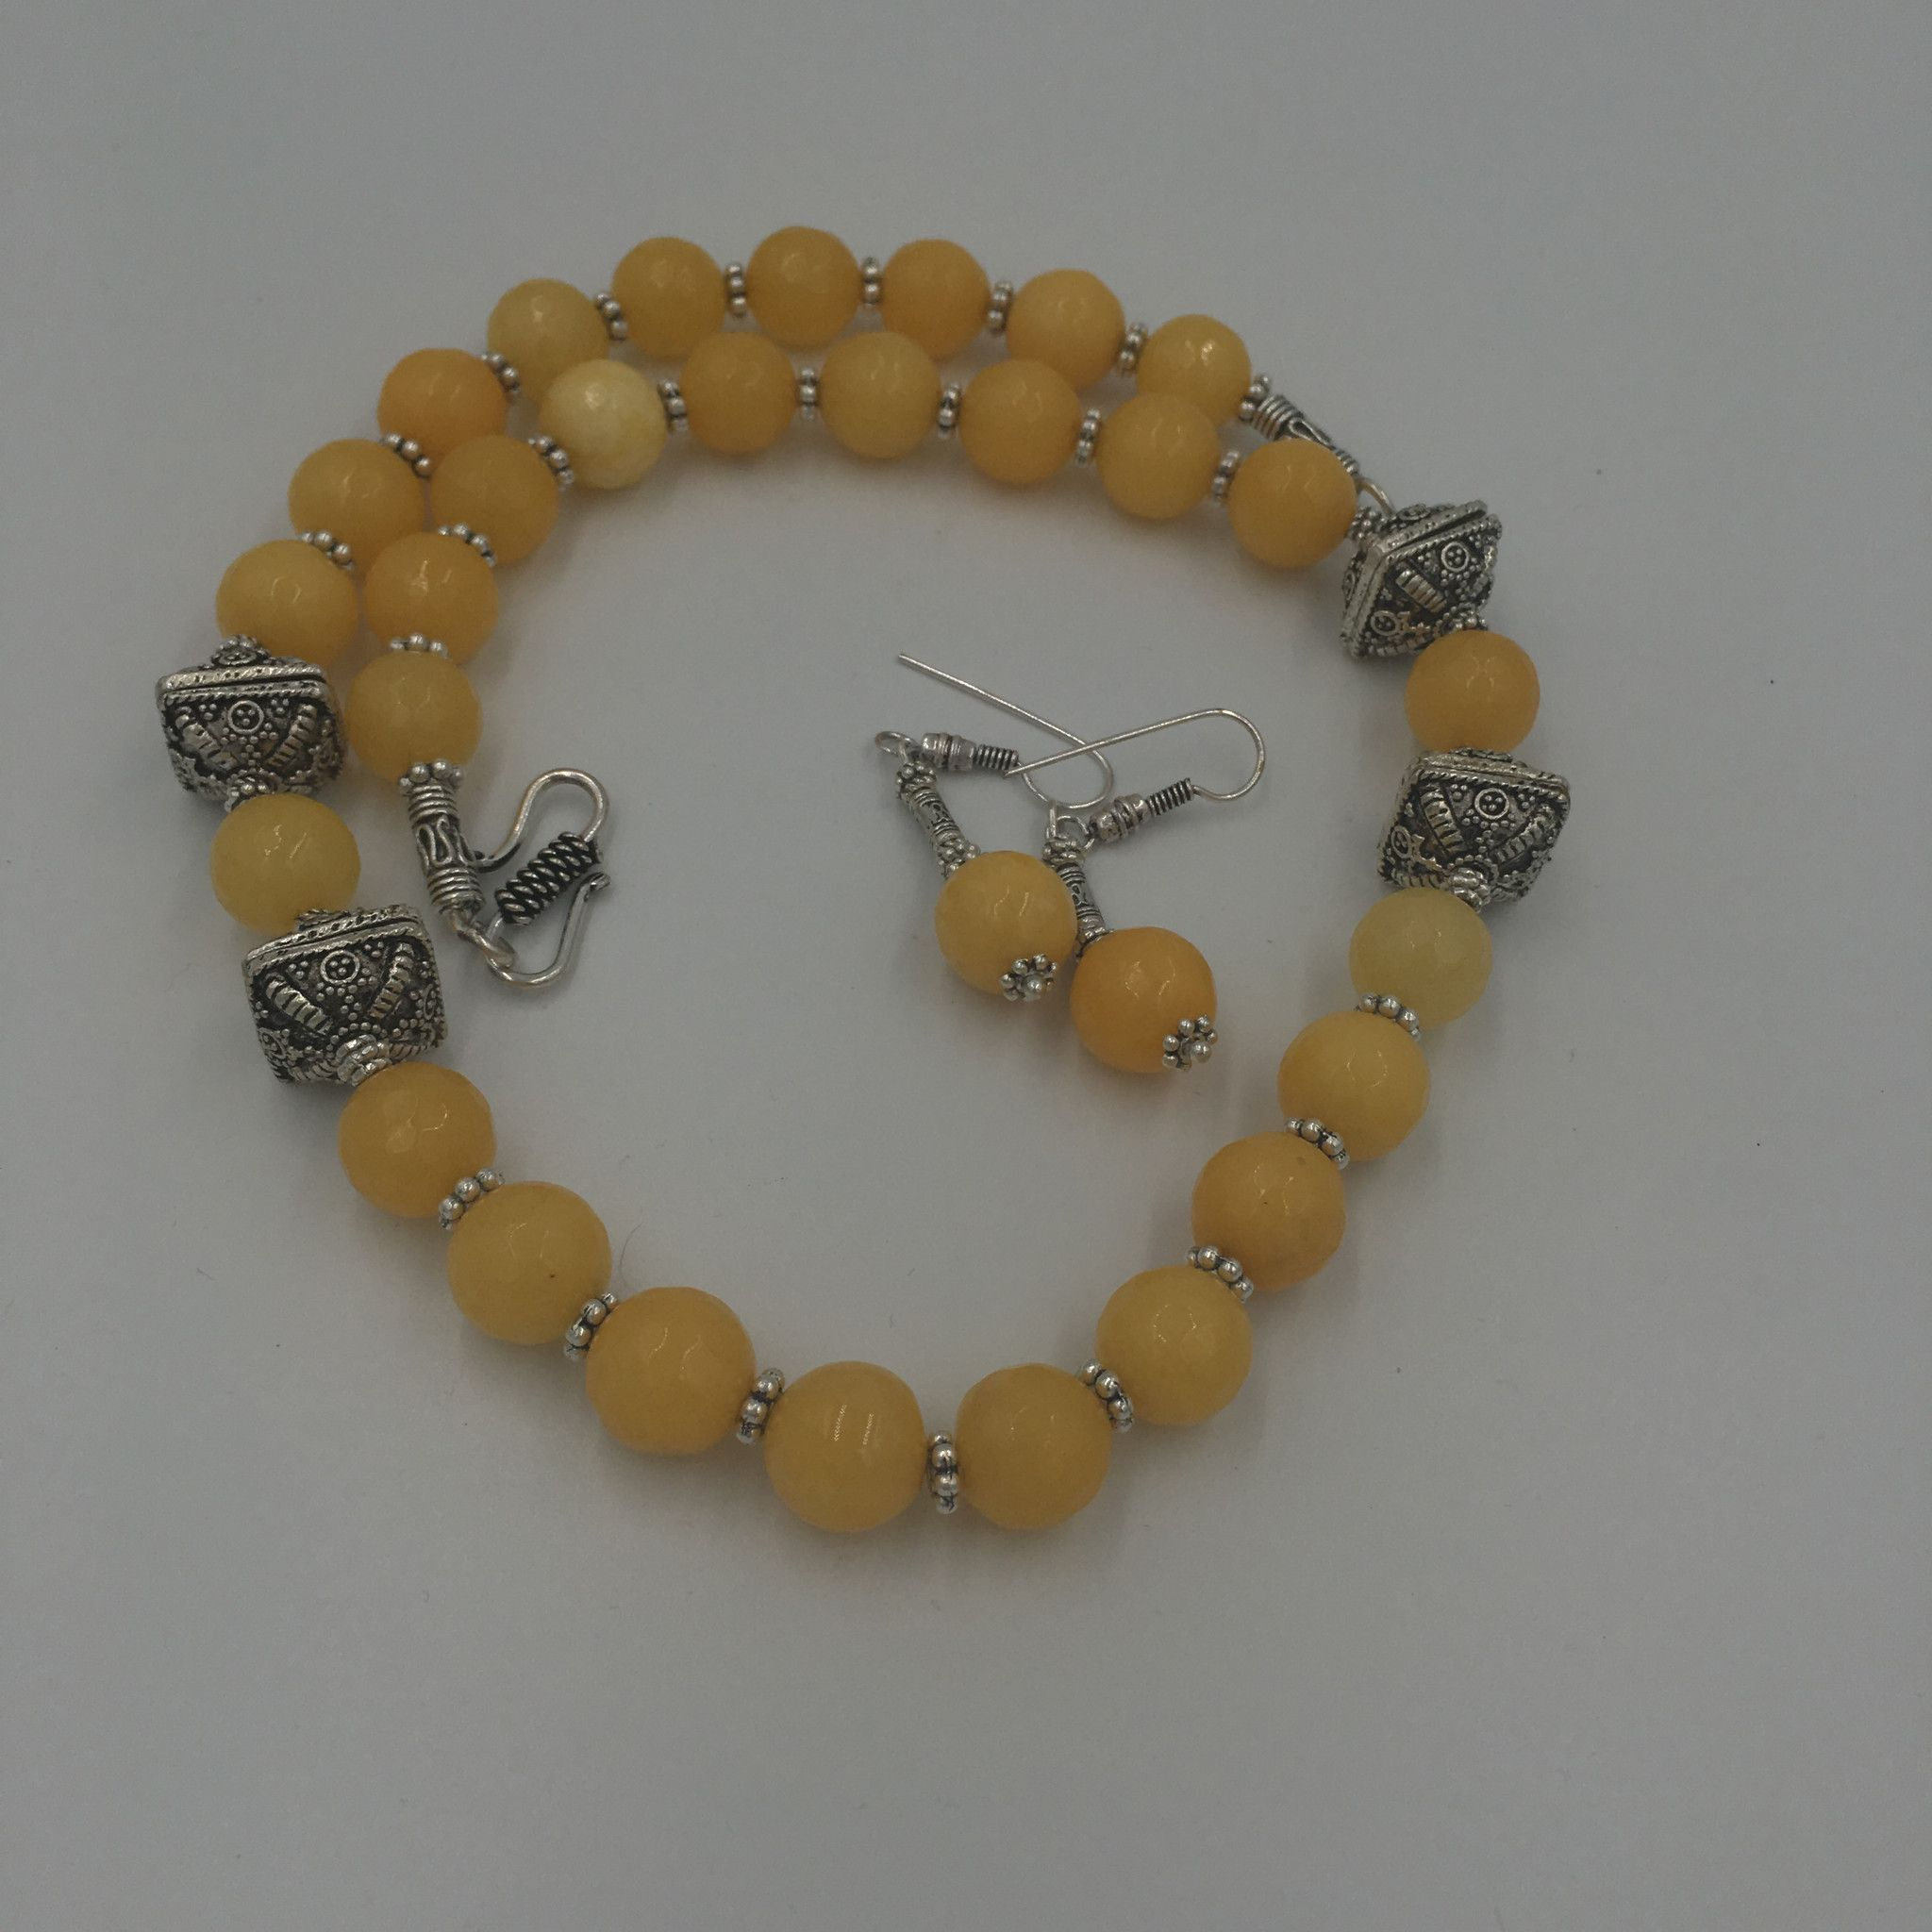 OXD - NN - Yellow Stone necklace